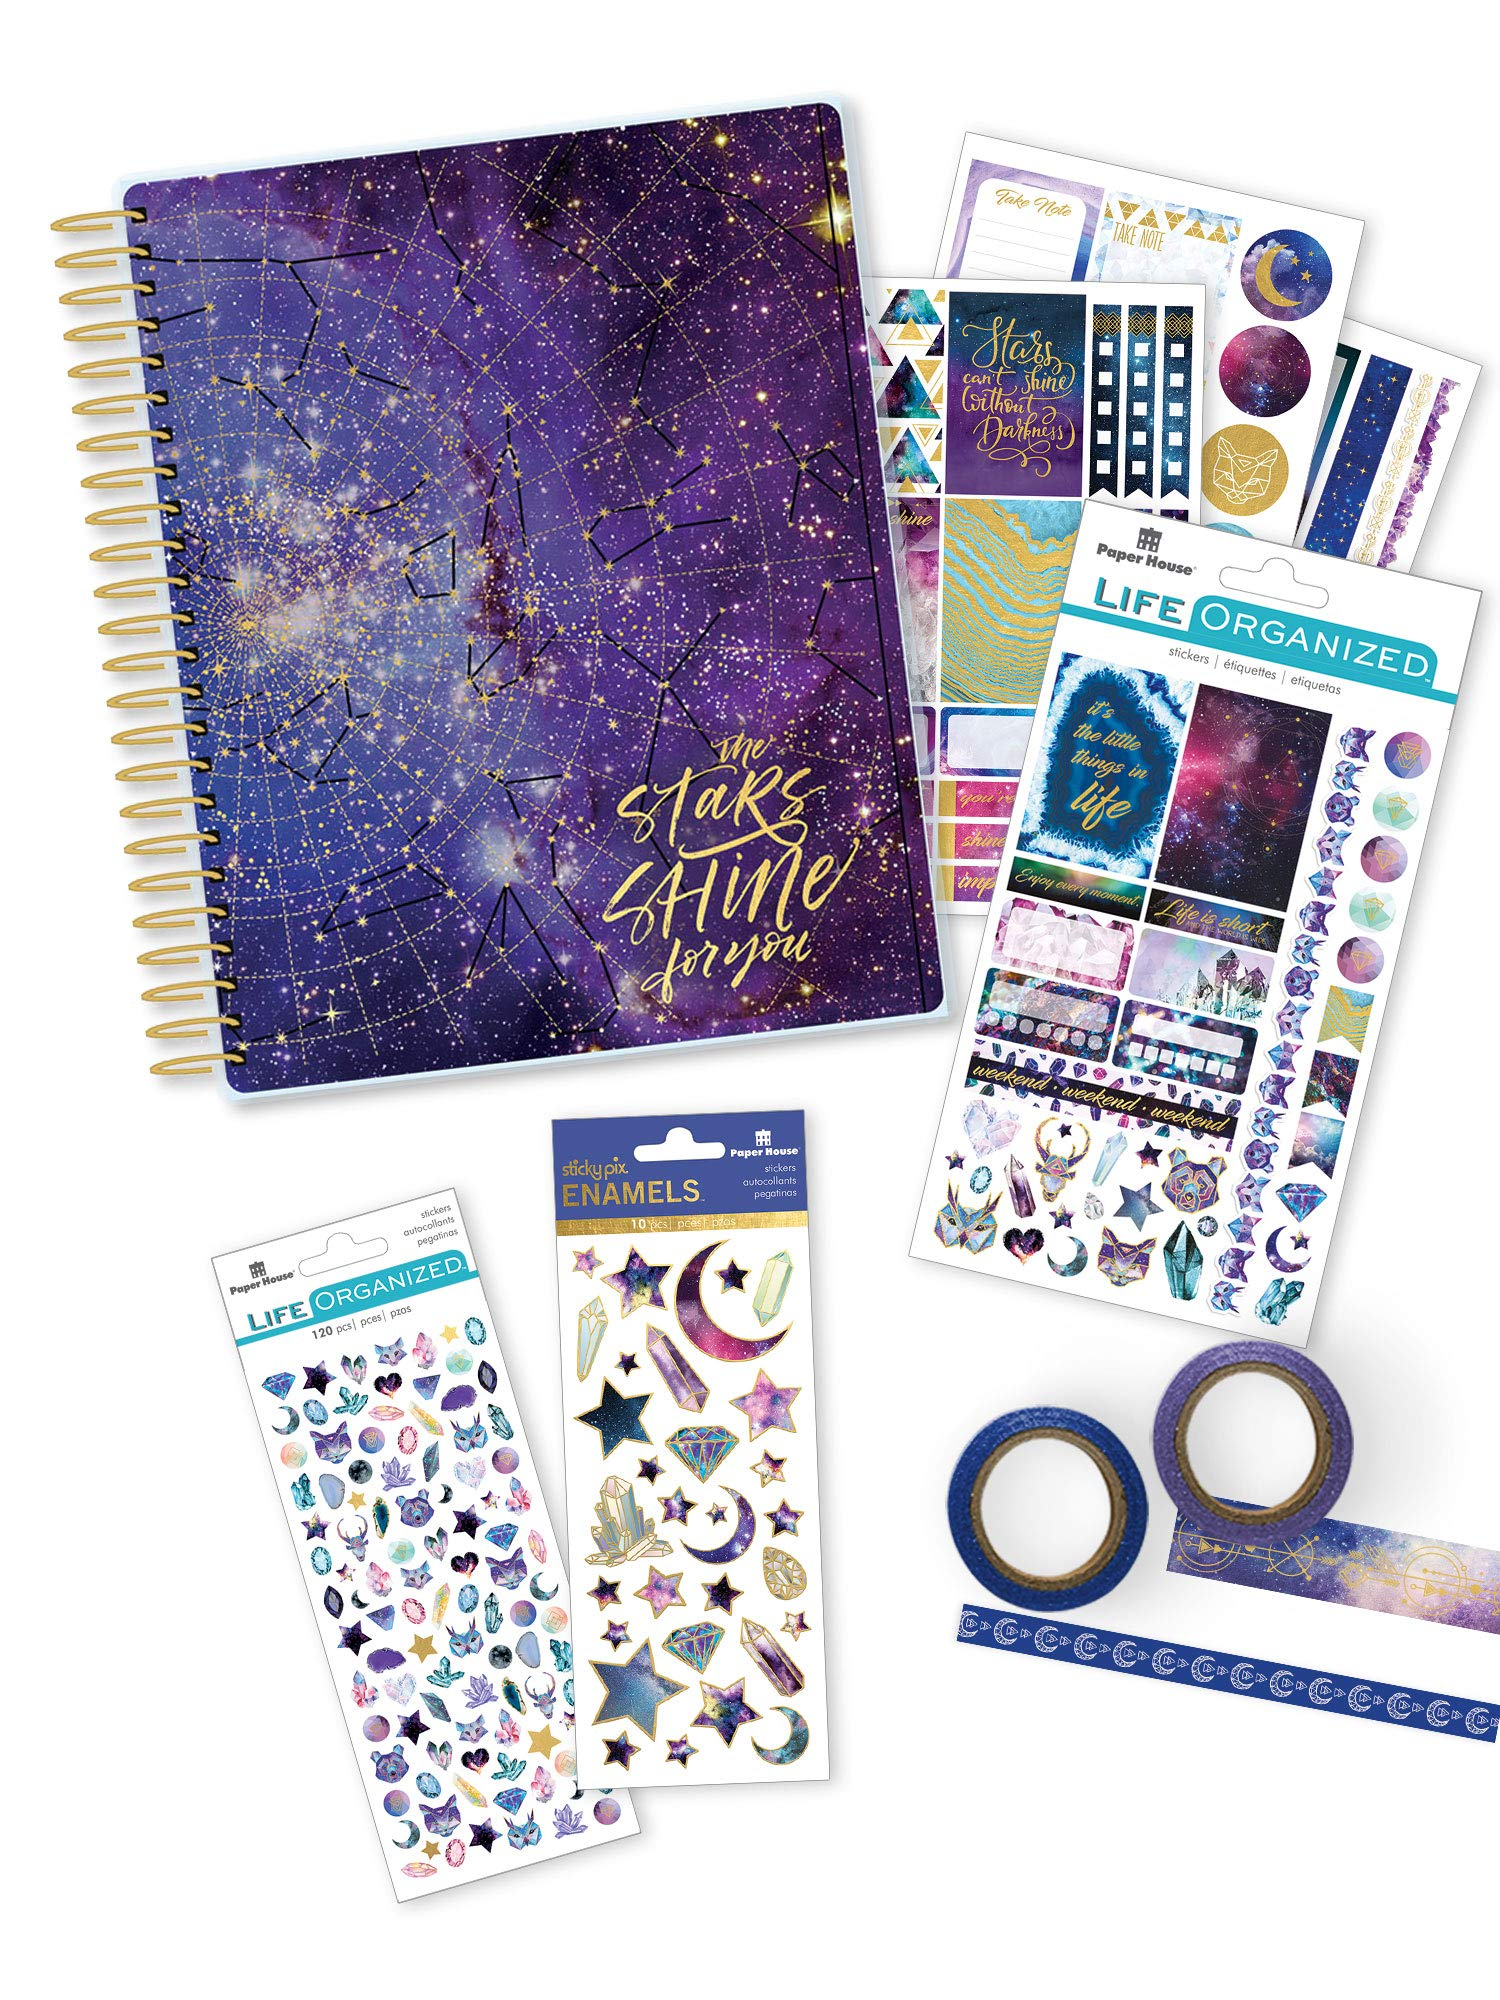 Paper House Productions SET-0010E Stargazer Accessory Bundle Includes 18 Month Undated Planner 3 Sticker Styles Washi Tape, Journal Diary